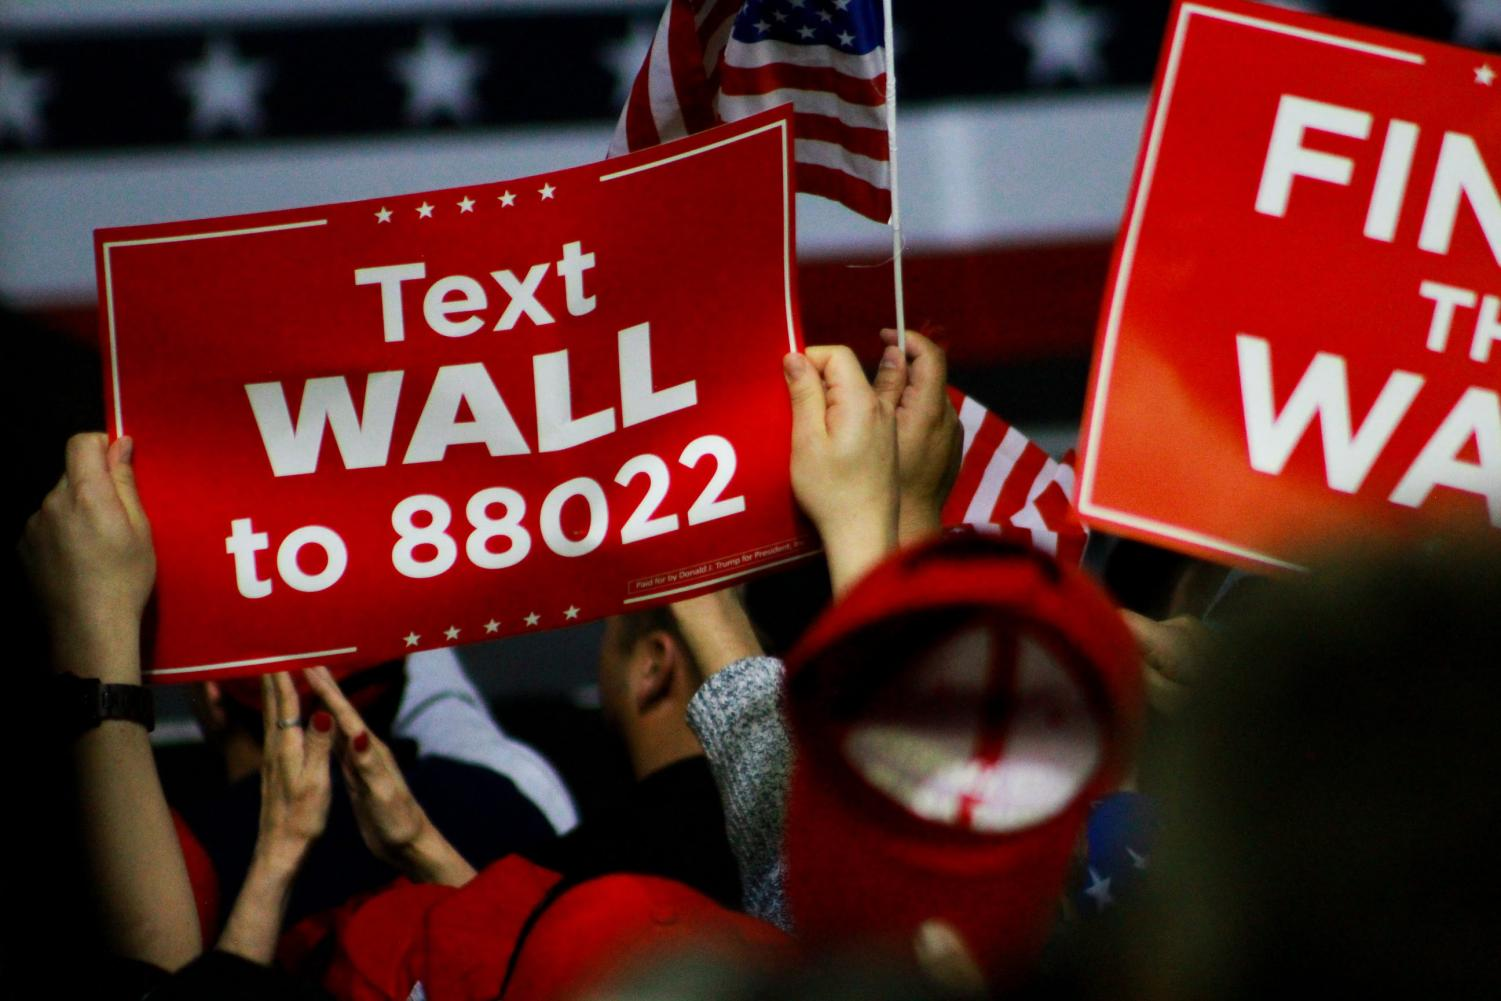 Trump supporters wave signage in favor of a border wall and Make America Great Again hats at the President's rally Monday.